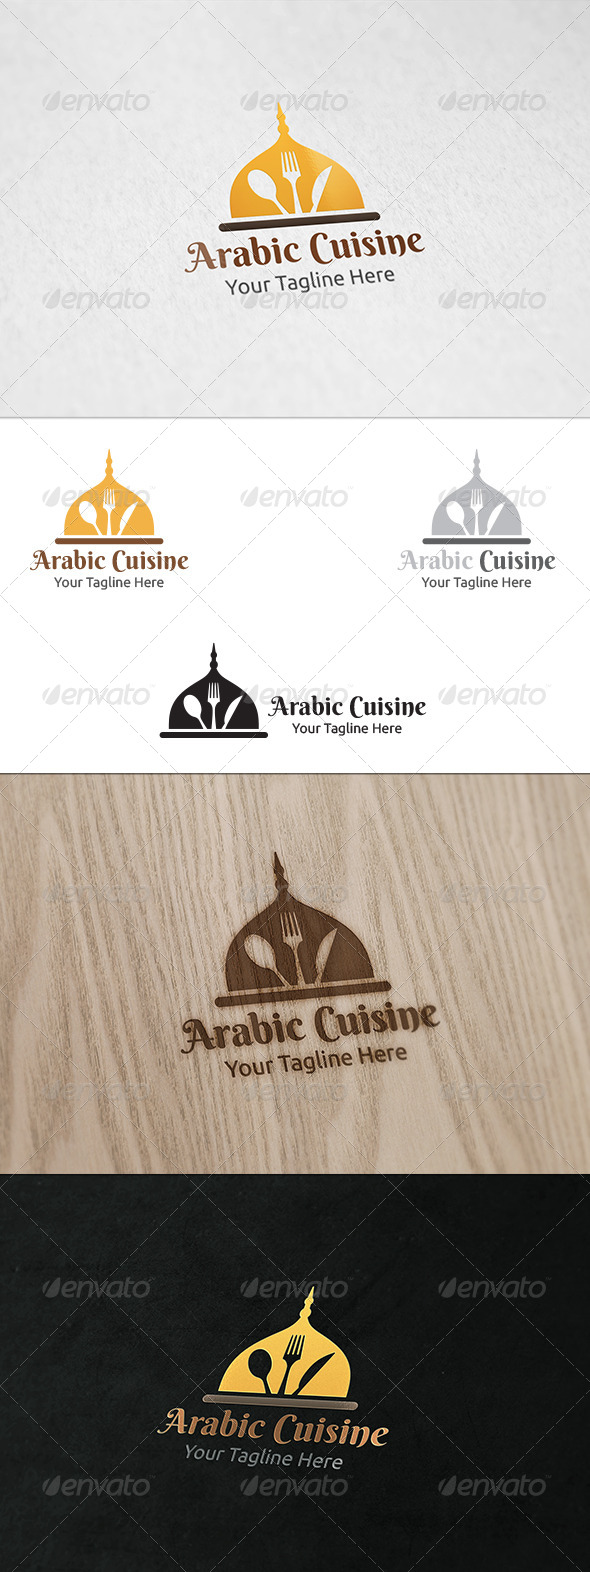 GraphicRiver Arabic Cuisine Logo Template 8423027